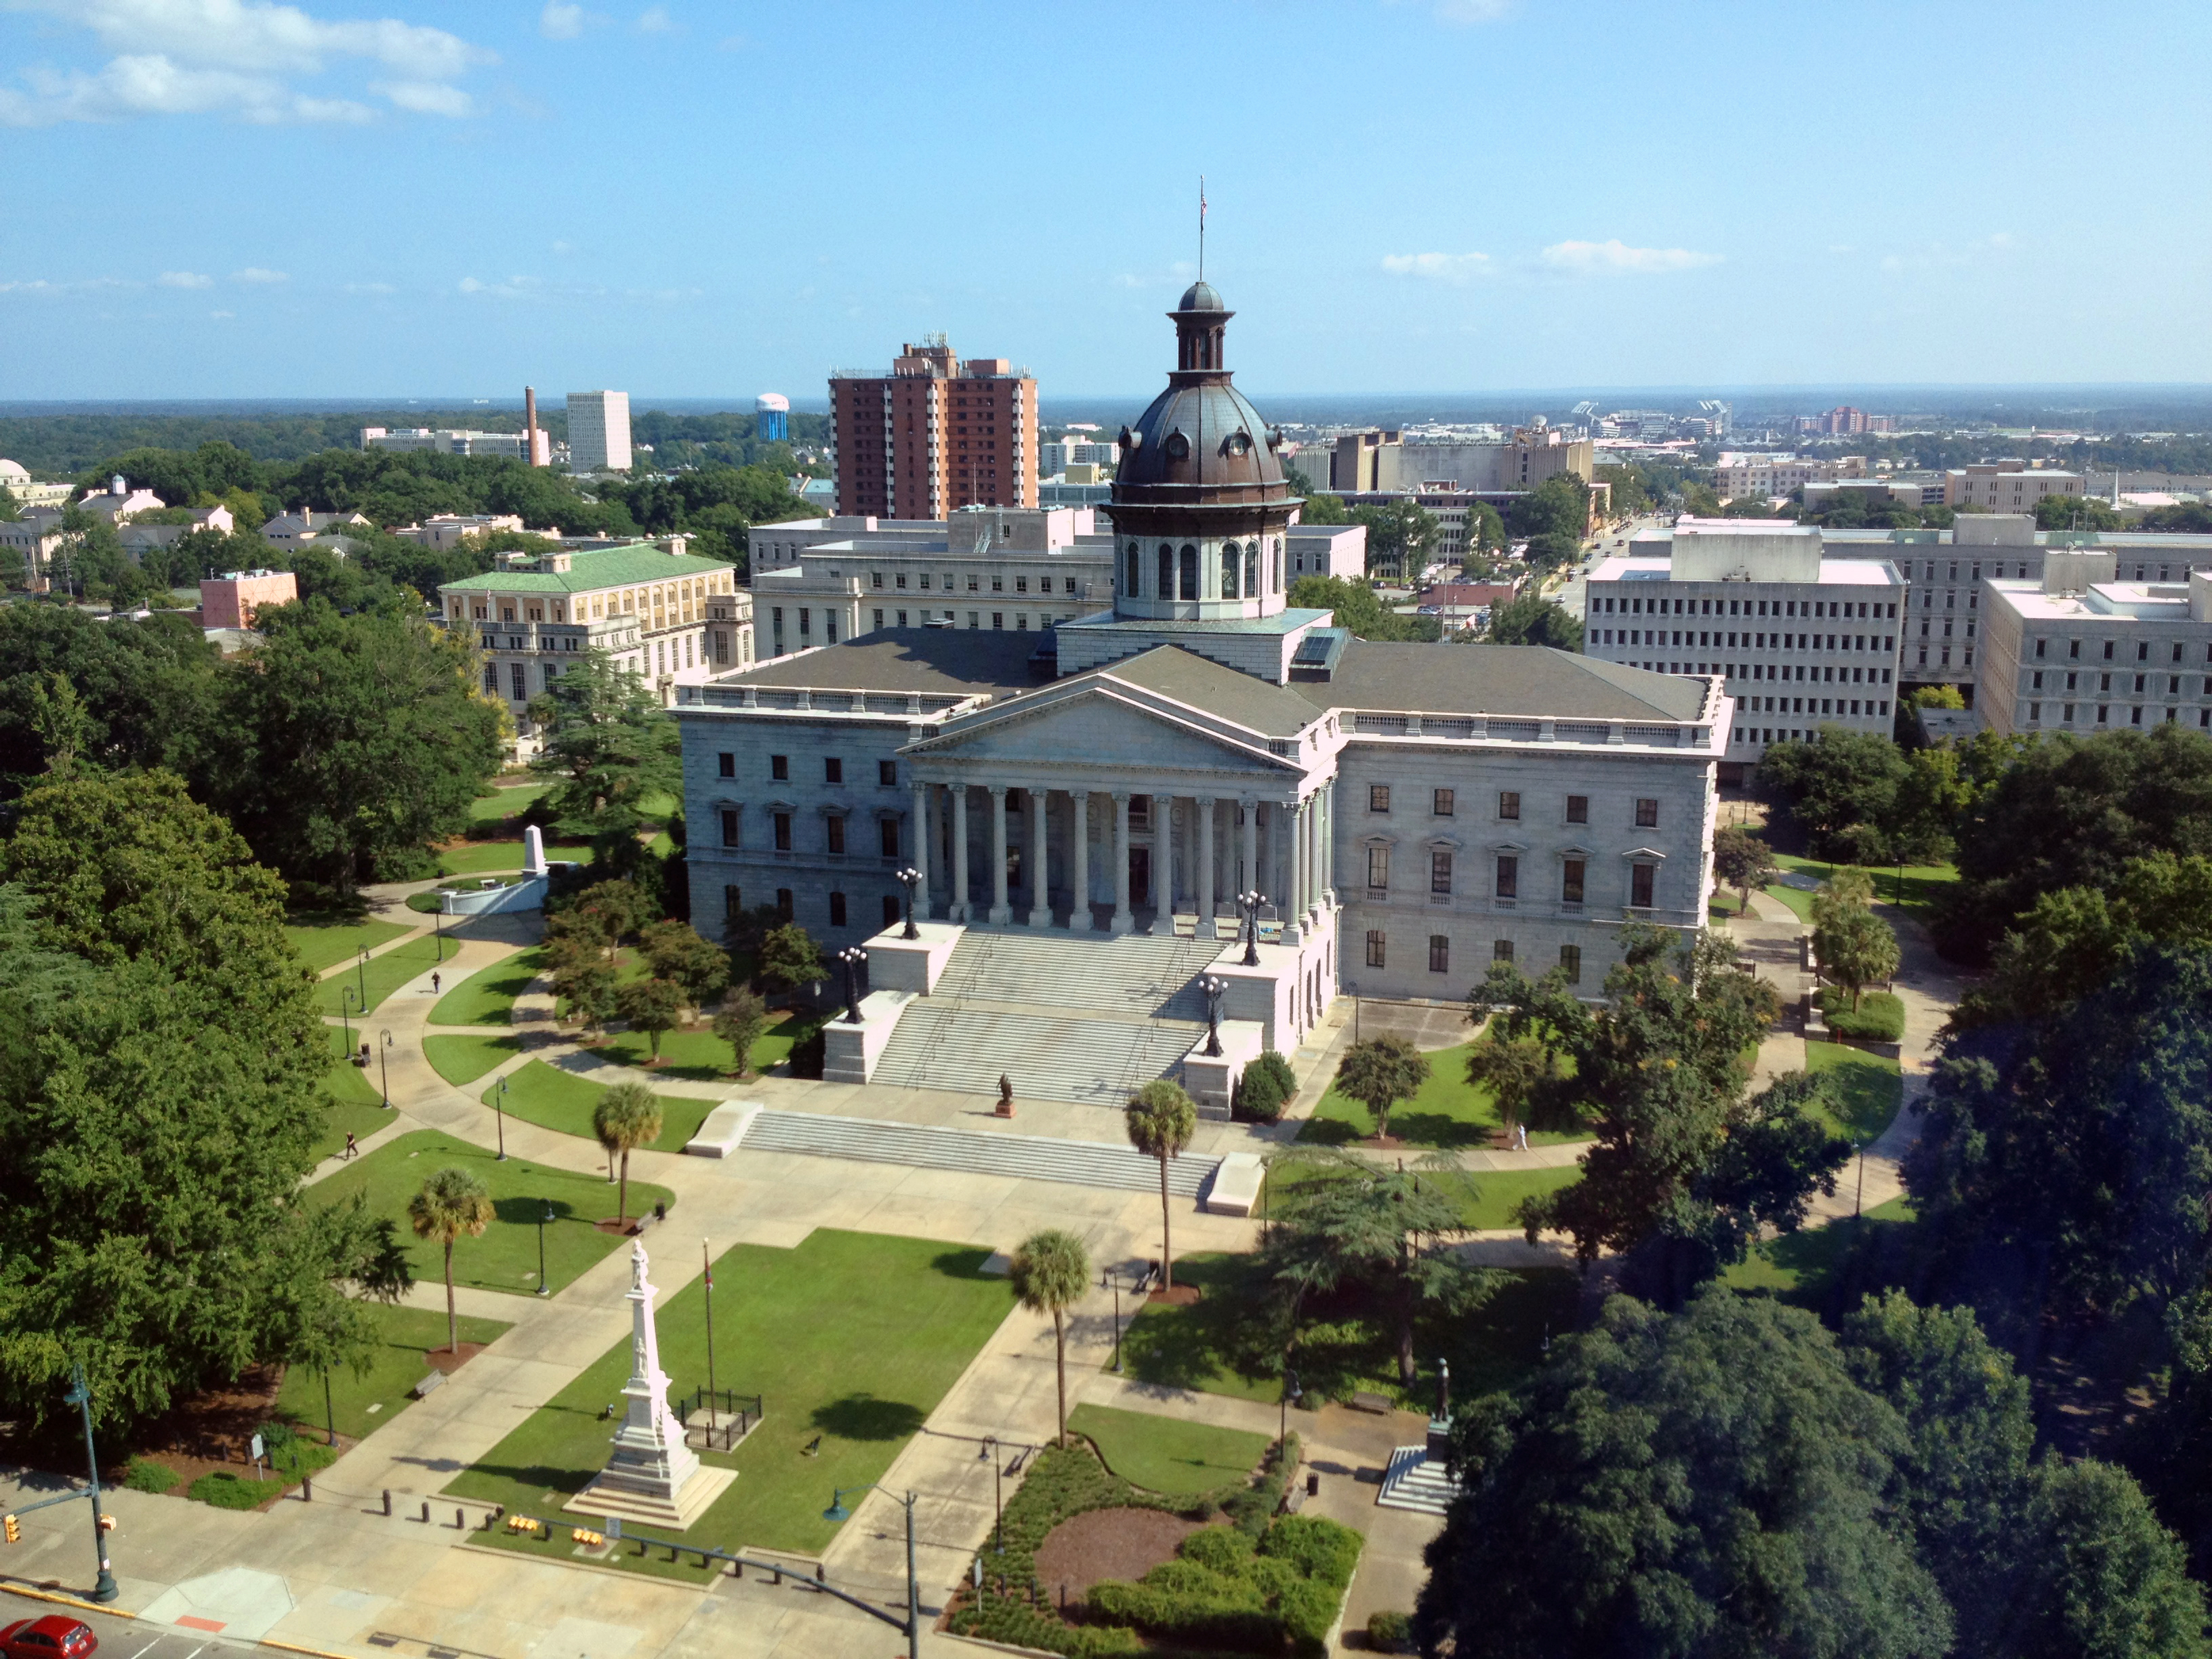 North Carolina Building Code Adoption